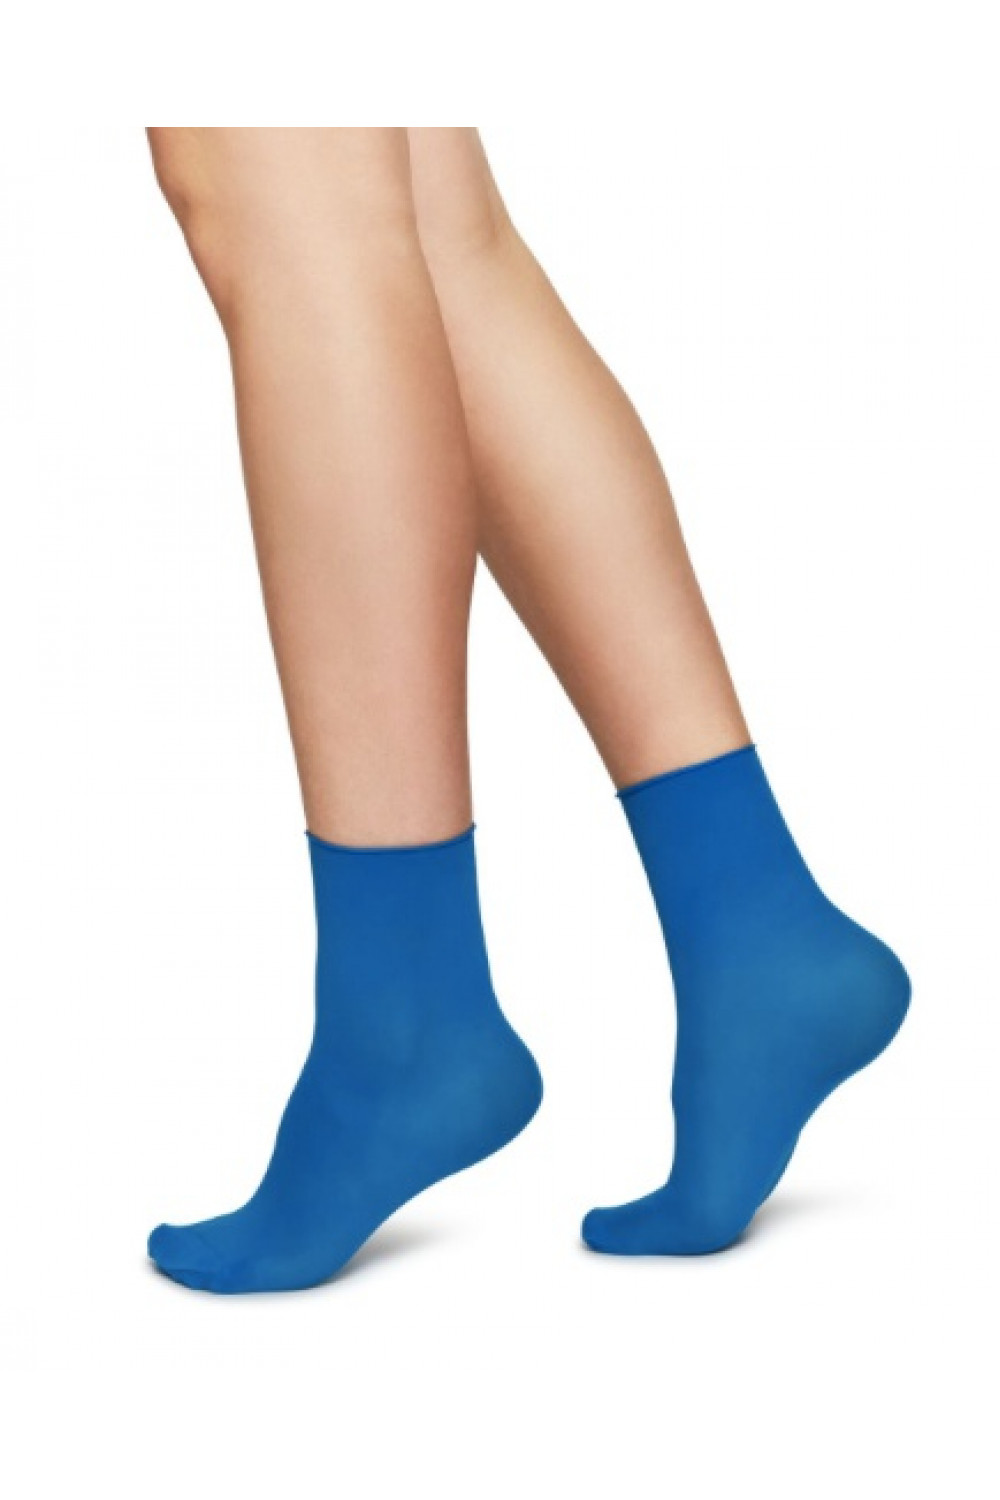 Judith Premium socks - 2-pack - Sharp blue,  Swedish Stockings